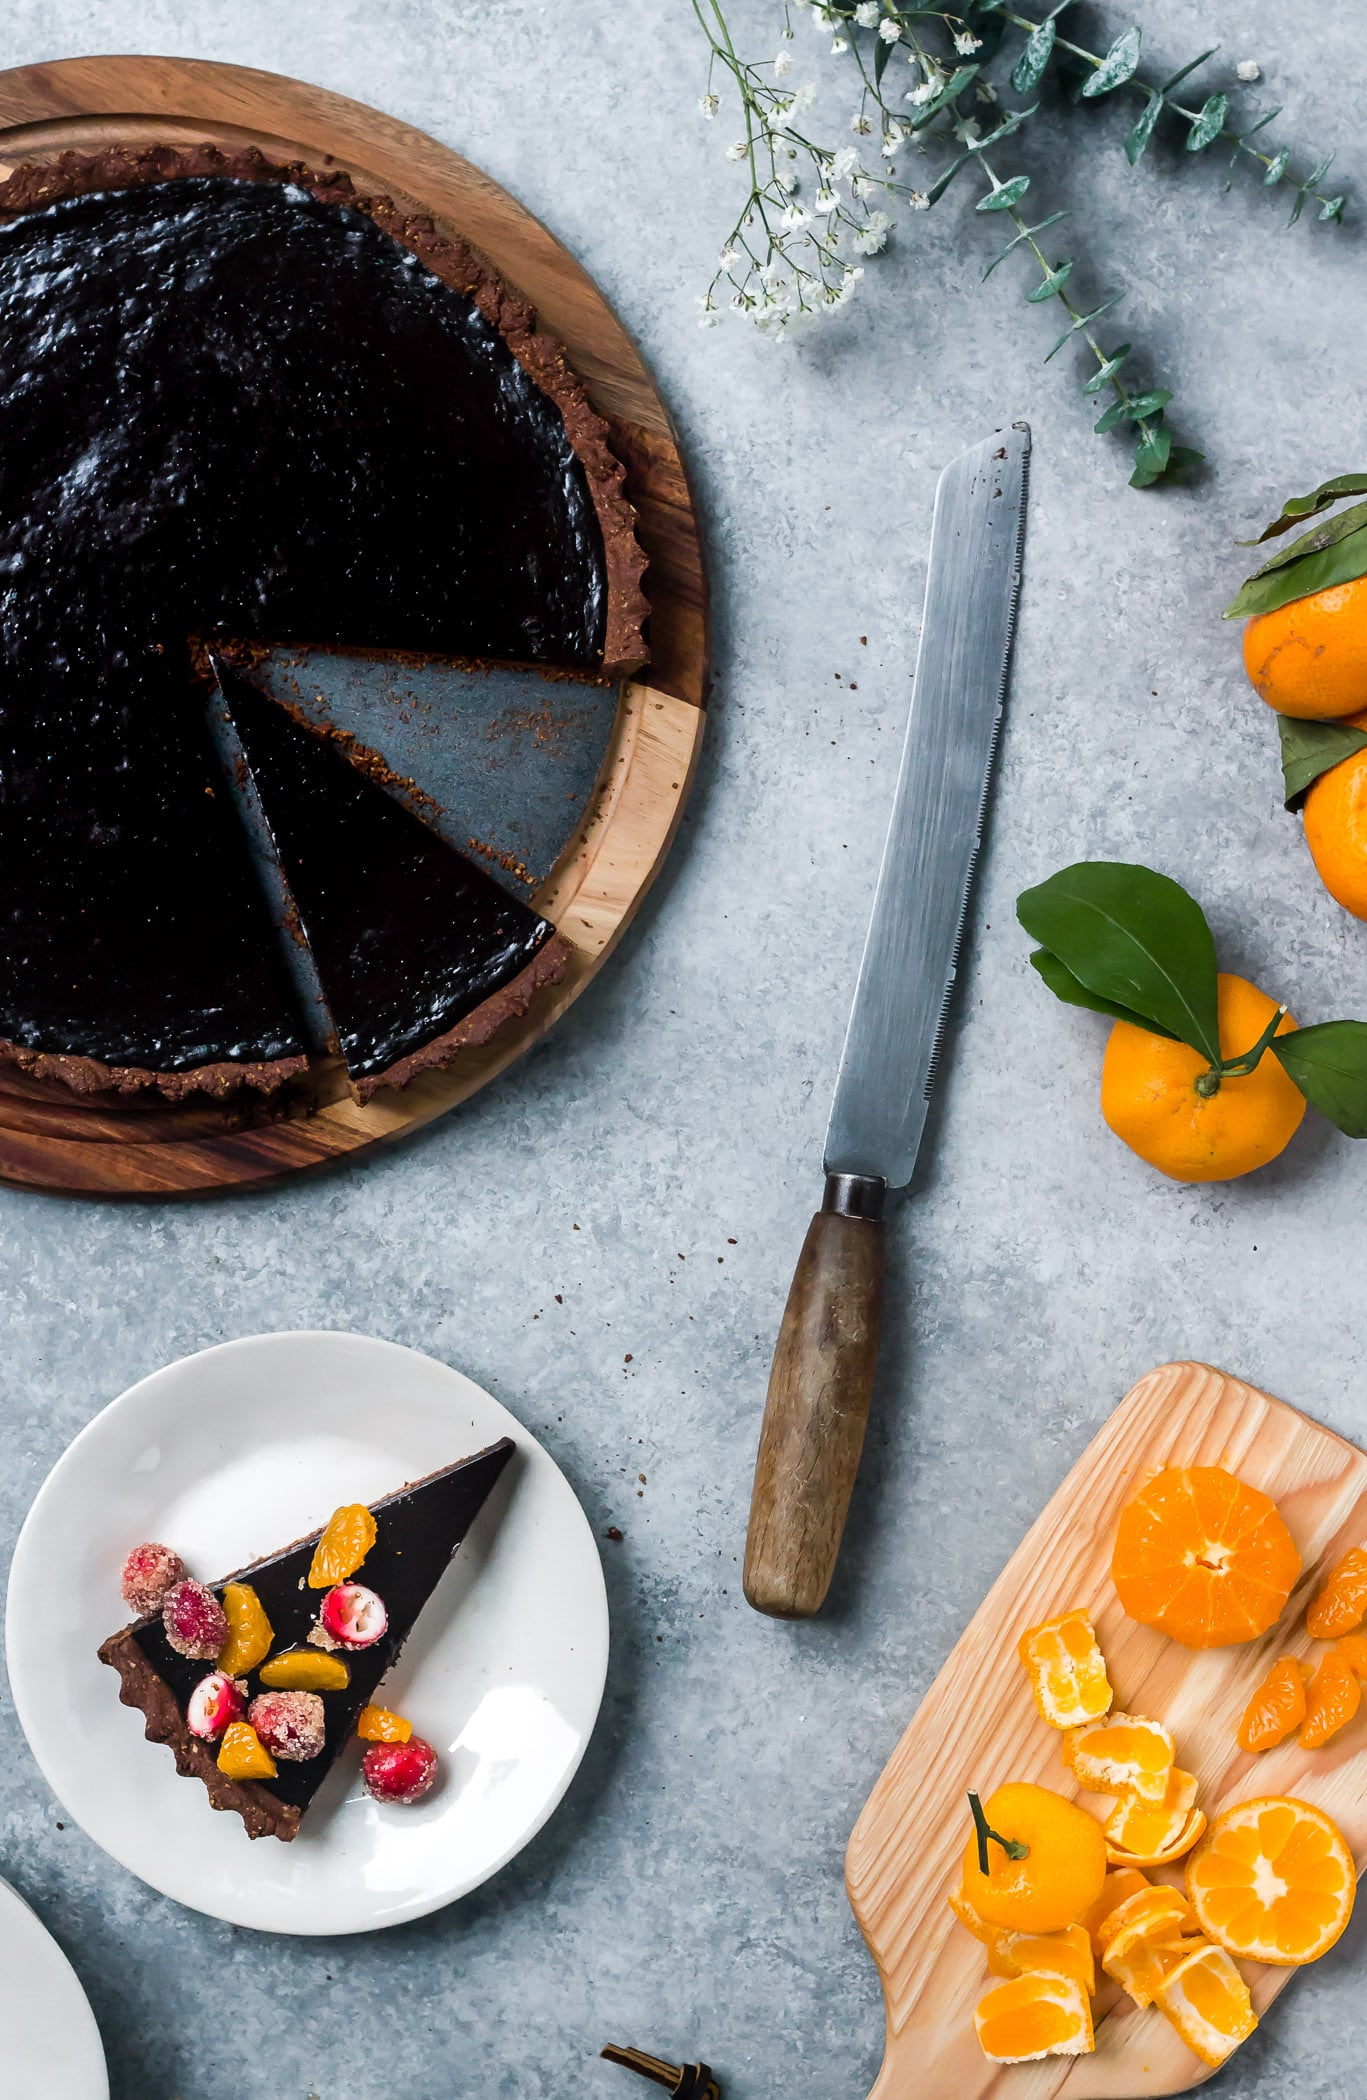 sliced dark chocolate tart with sugared cranberry and satsumas